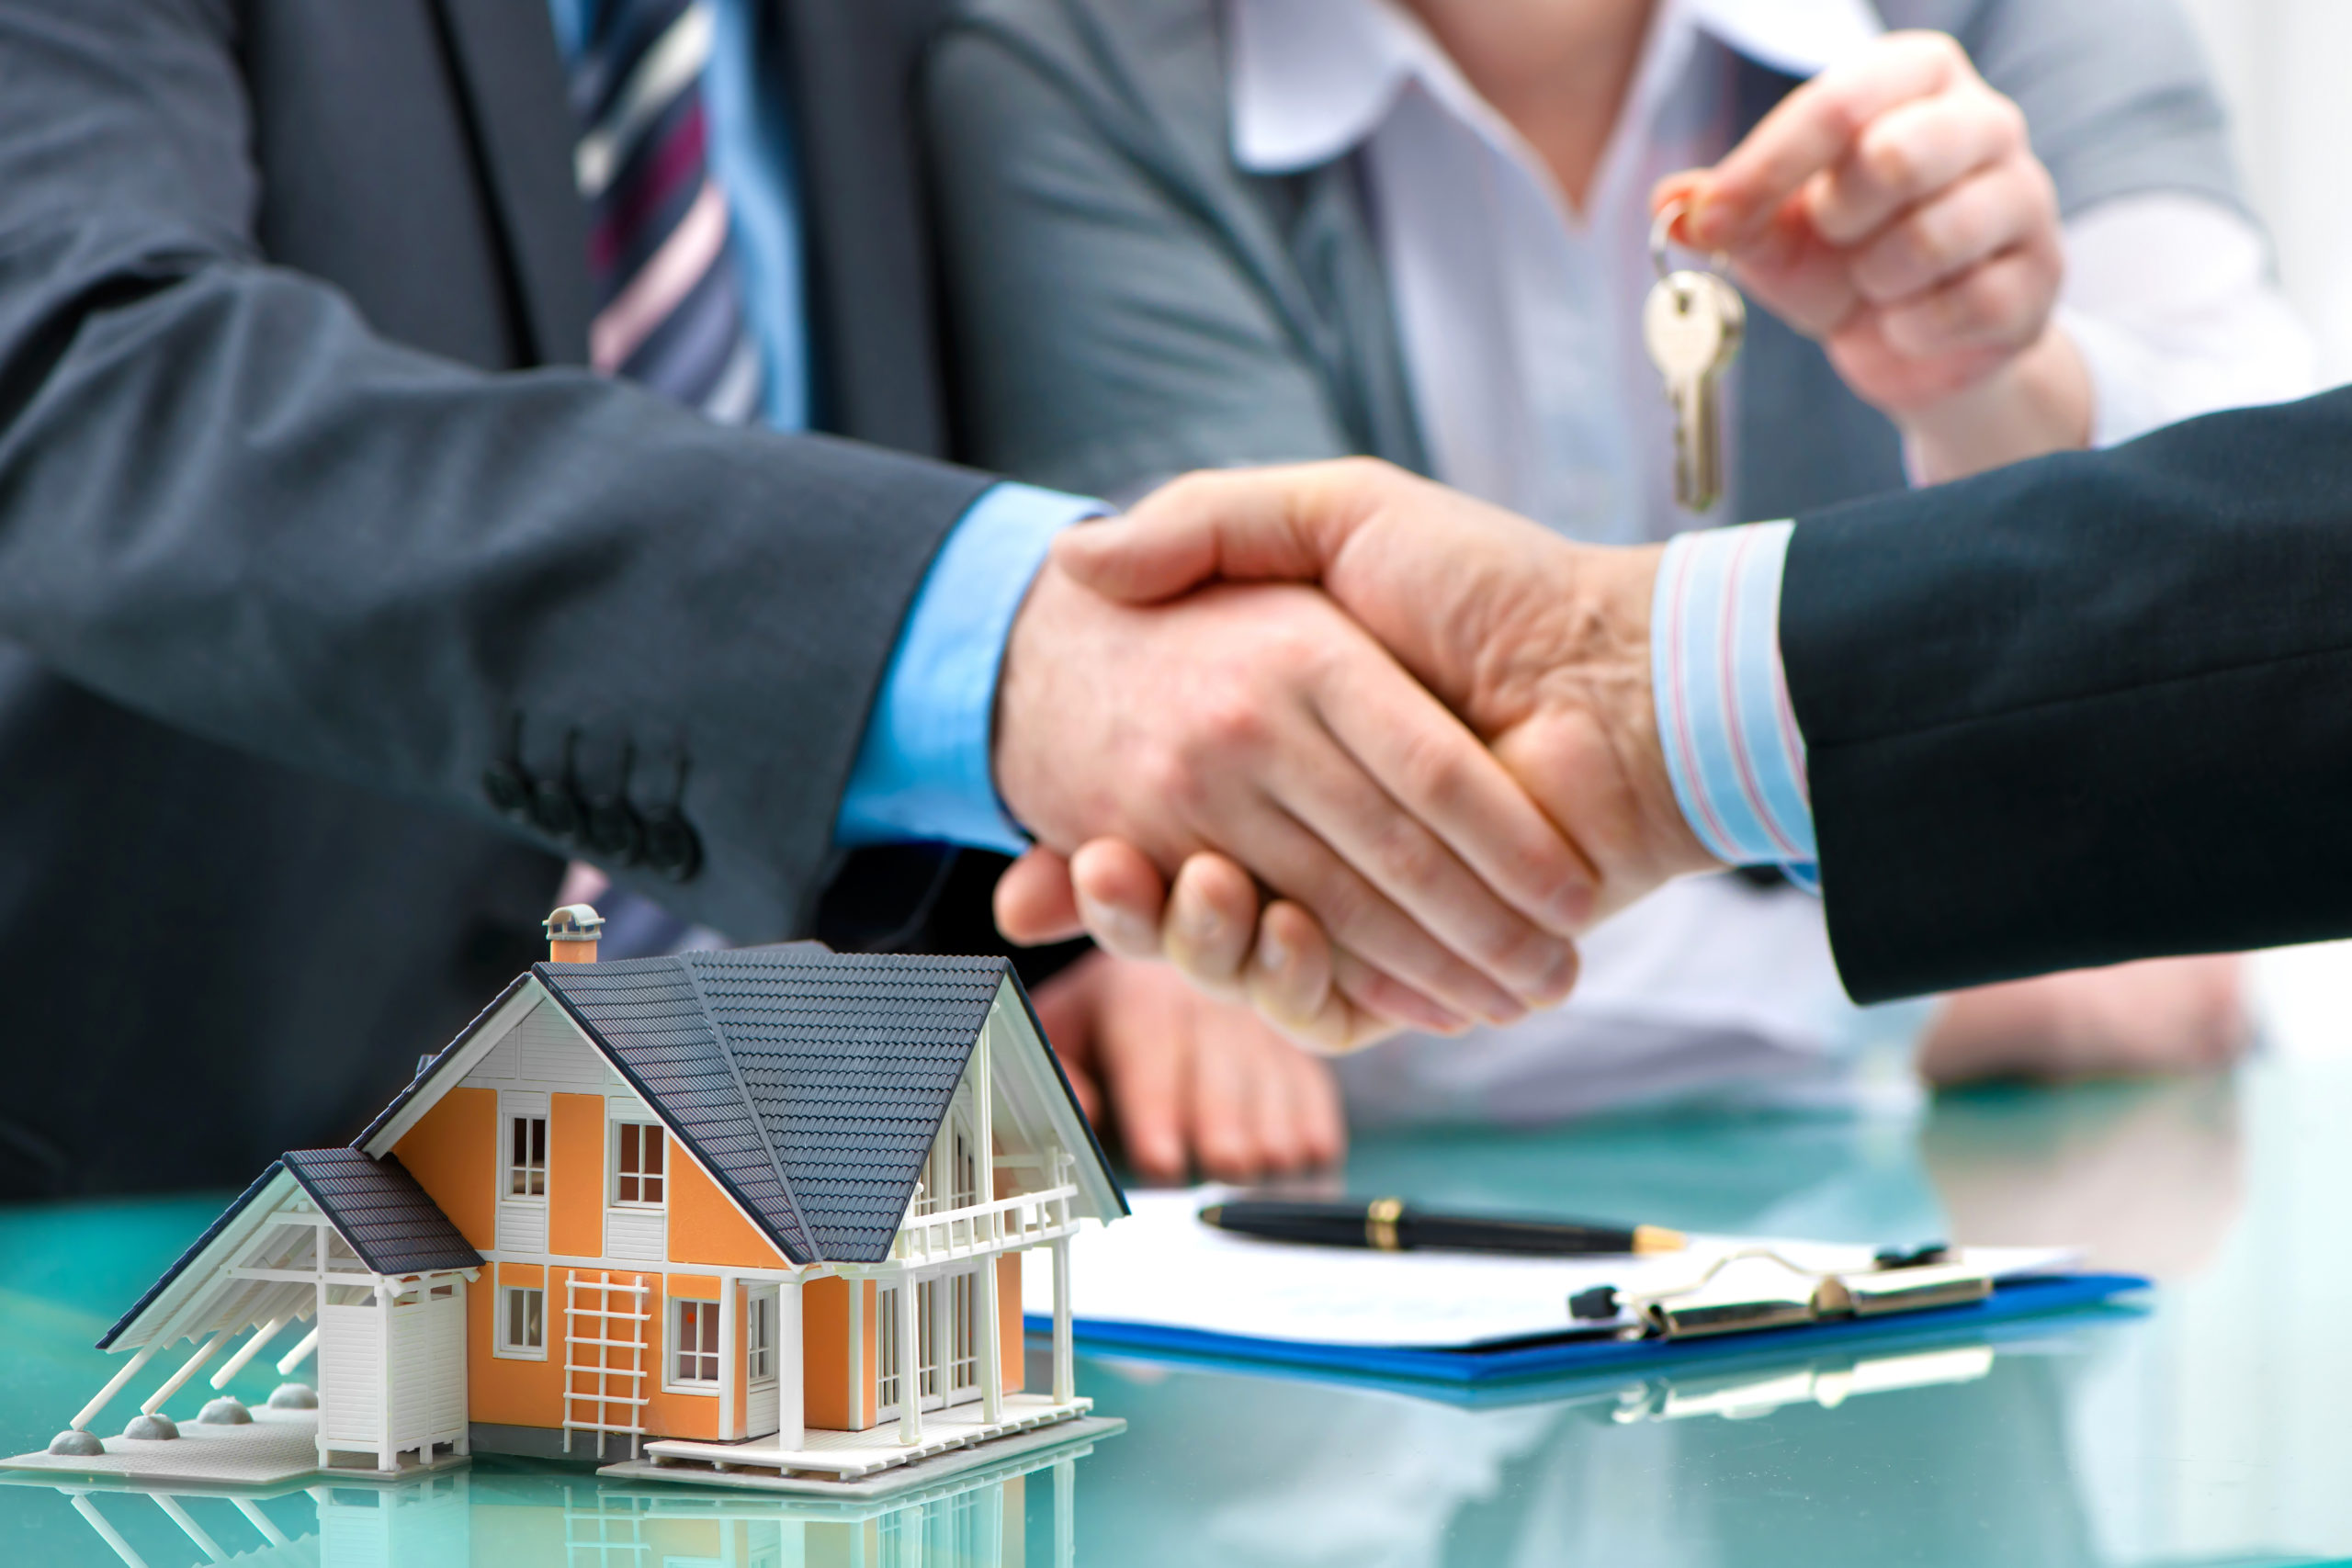 5 Reasons to Use a Local Mortgage Lender When Financing a House